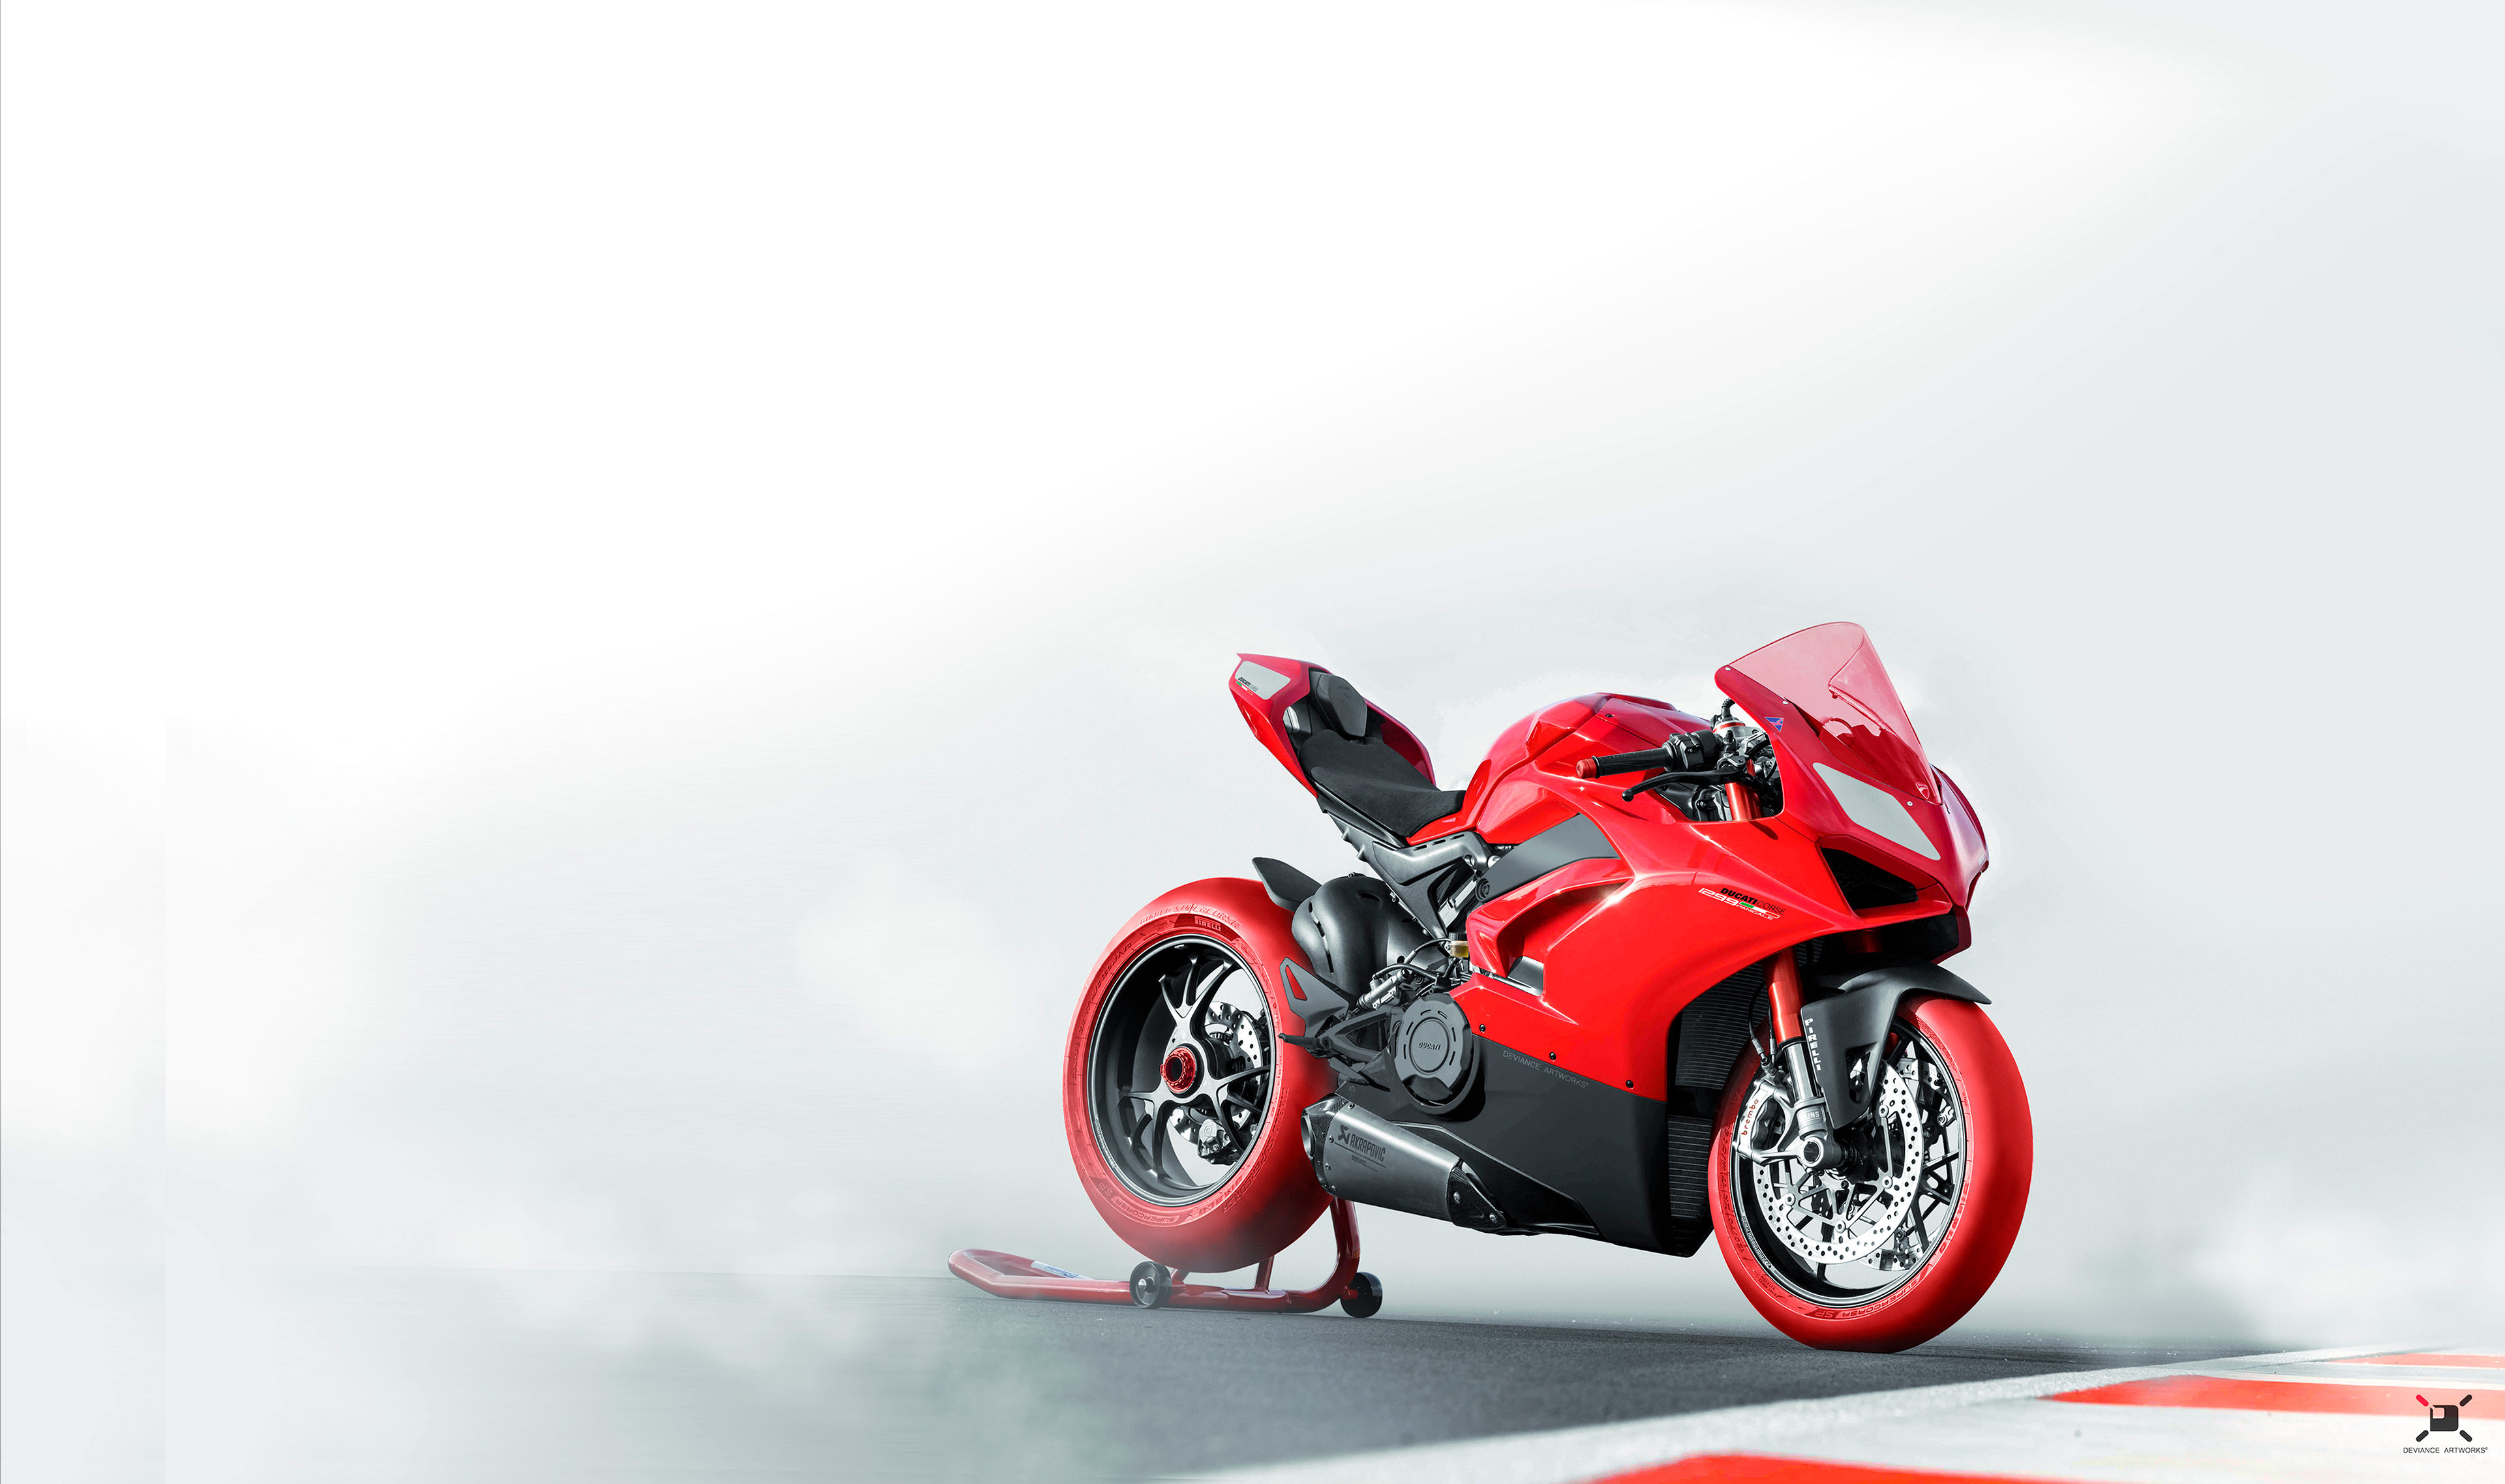 Ducati 1299 Panigale S 4k Wallpapers: Ducati 1299 Panigale 4k, HD Bikes, 4k Wallpapers, Images